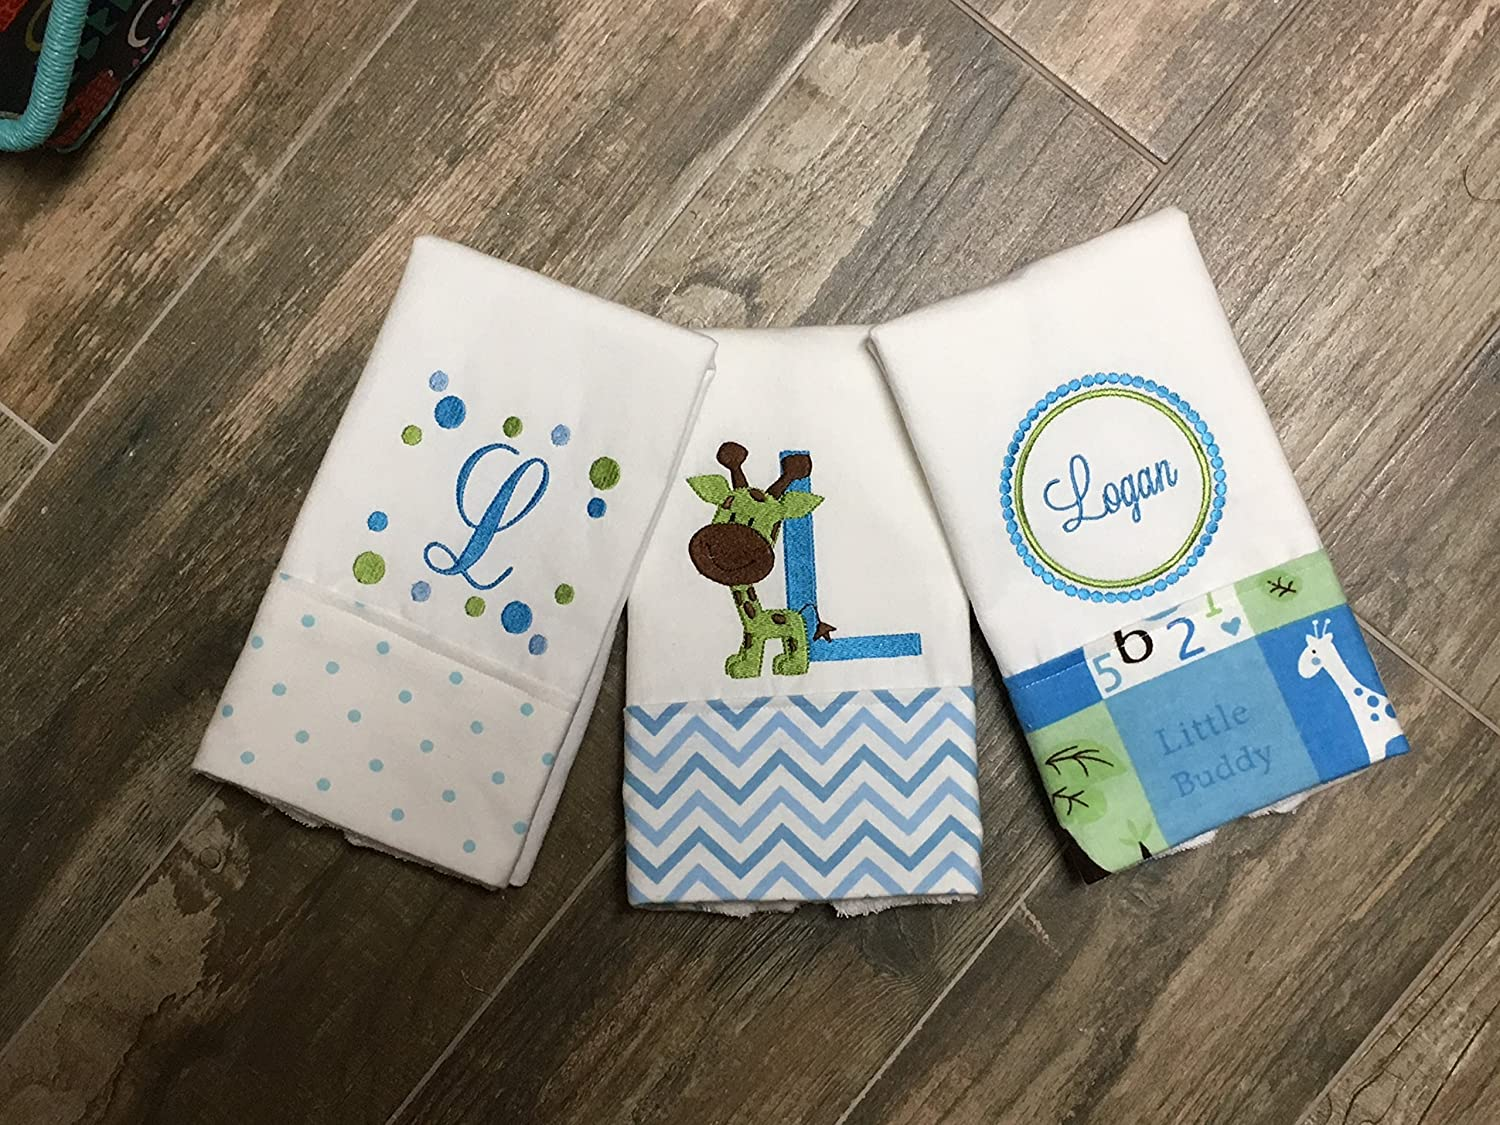 3 Giraffe Personalized Embroidered Burp Cloths, Baby Shower Gift, 3 Blue Burp Cloths, Giraffe Burp Cloth, Boutique Burp Cloth, Boy Gift